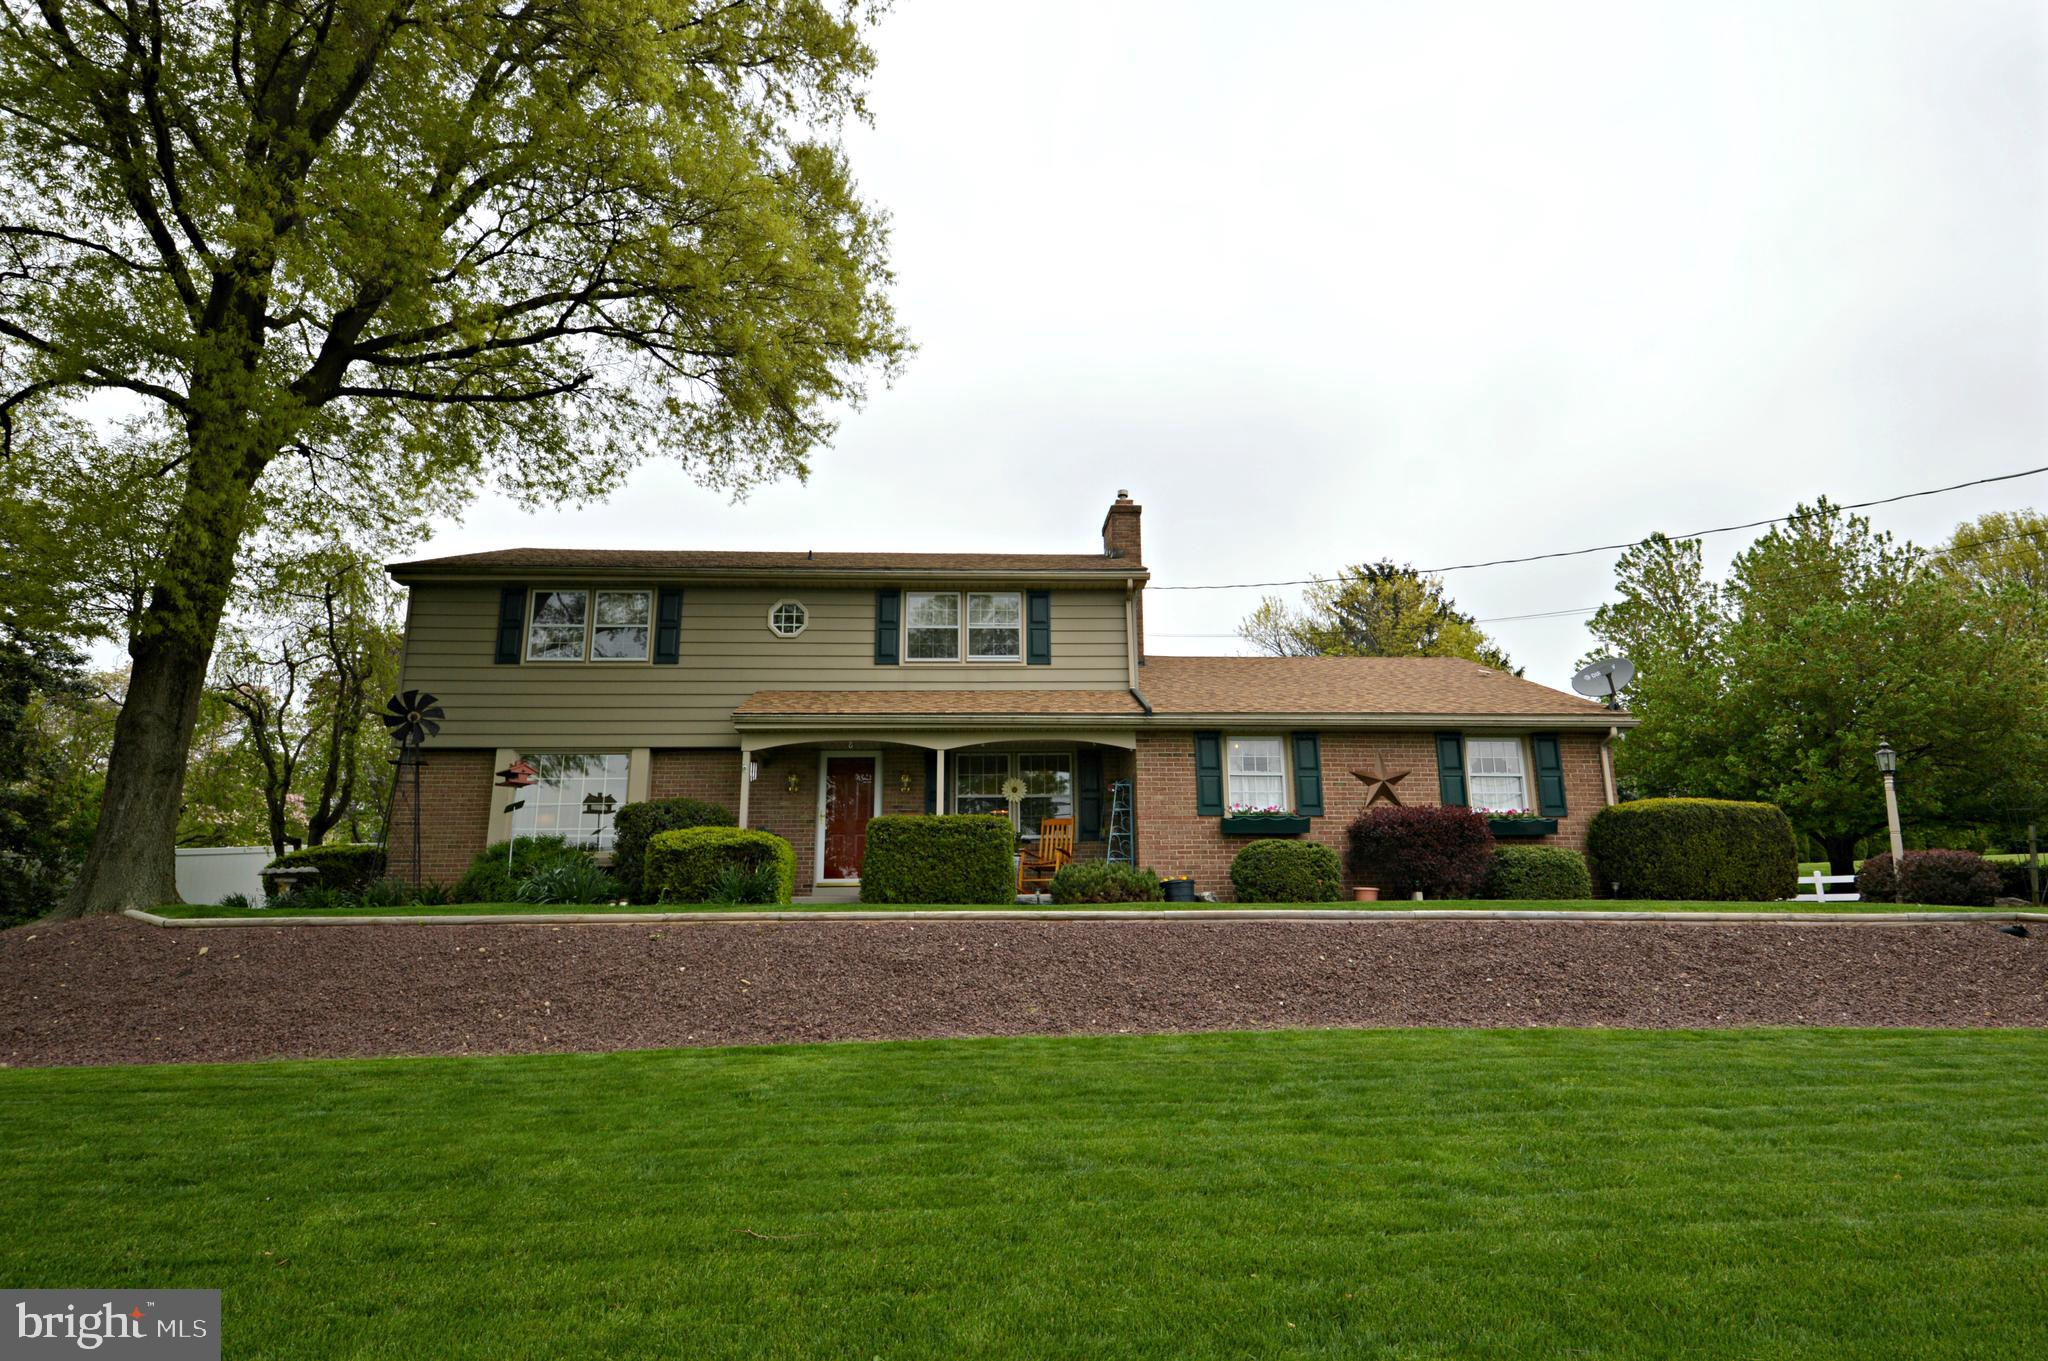 117 HILL ROAD, NEW HOLLAND, PA 17557